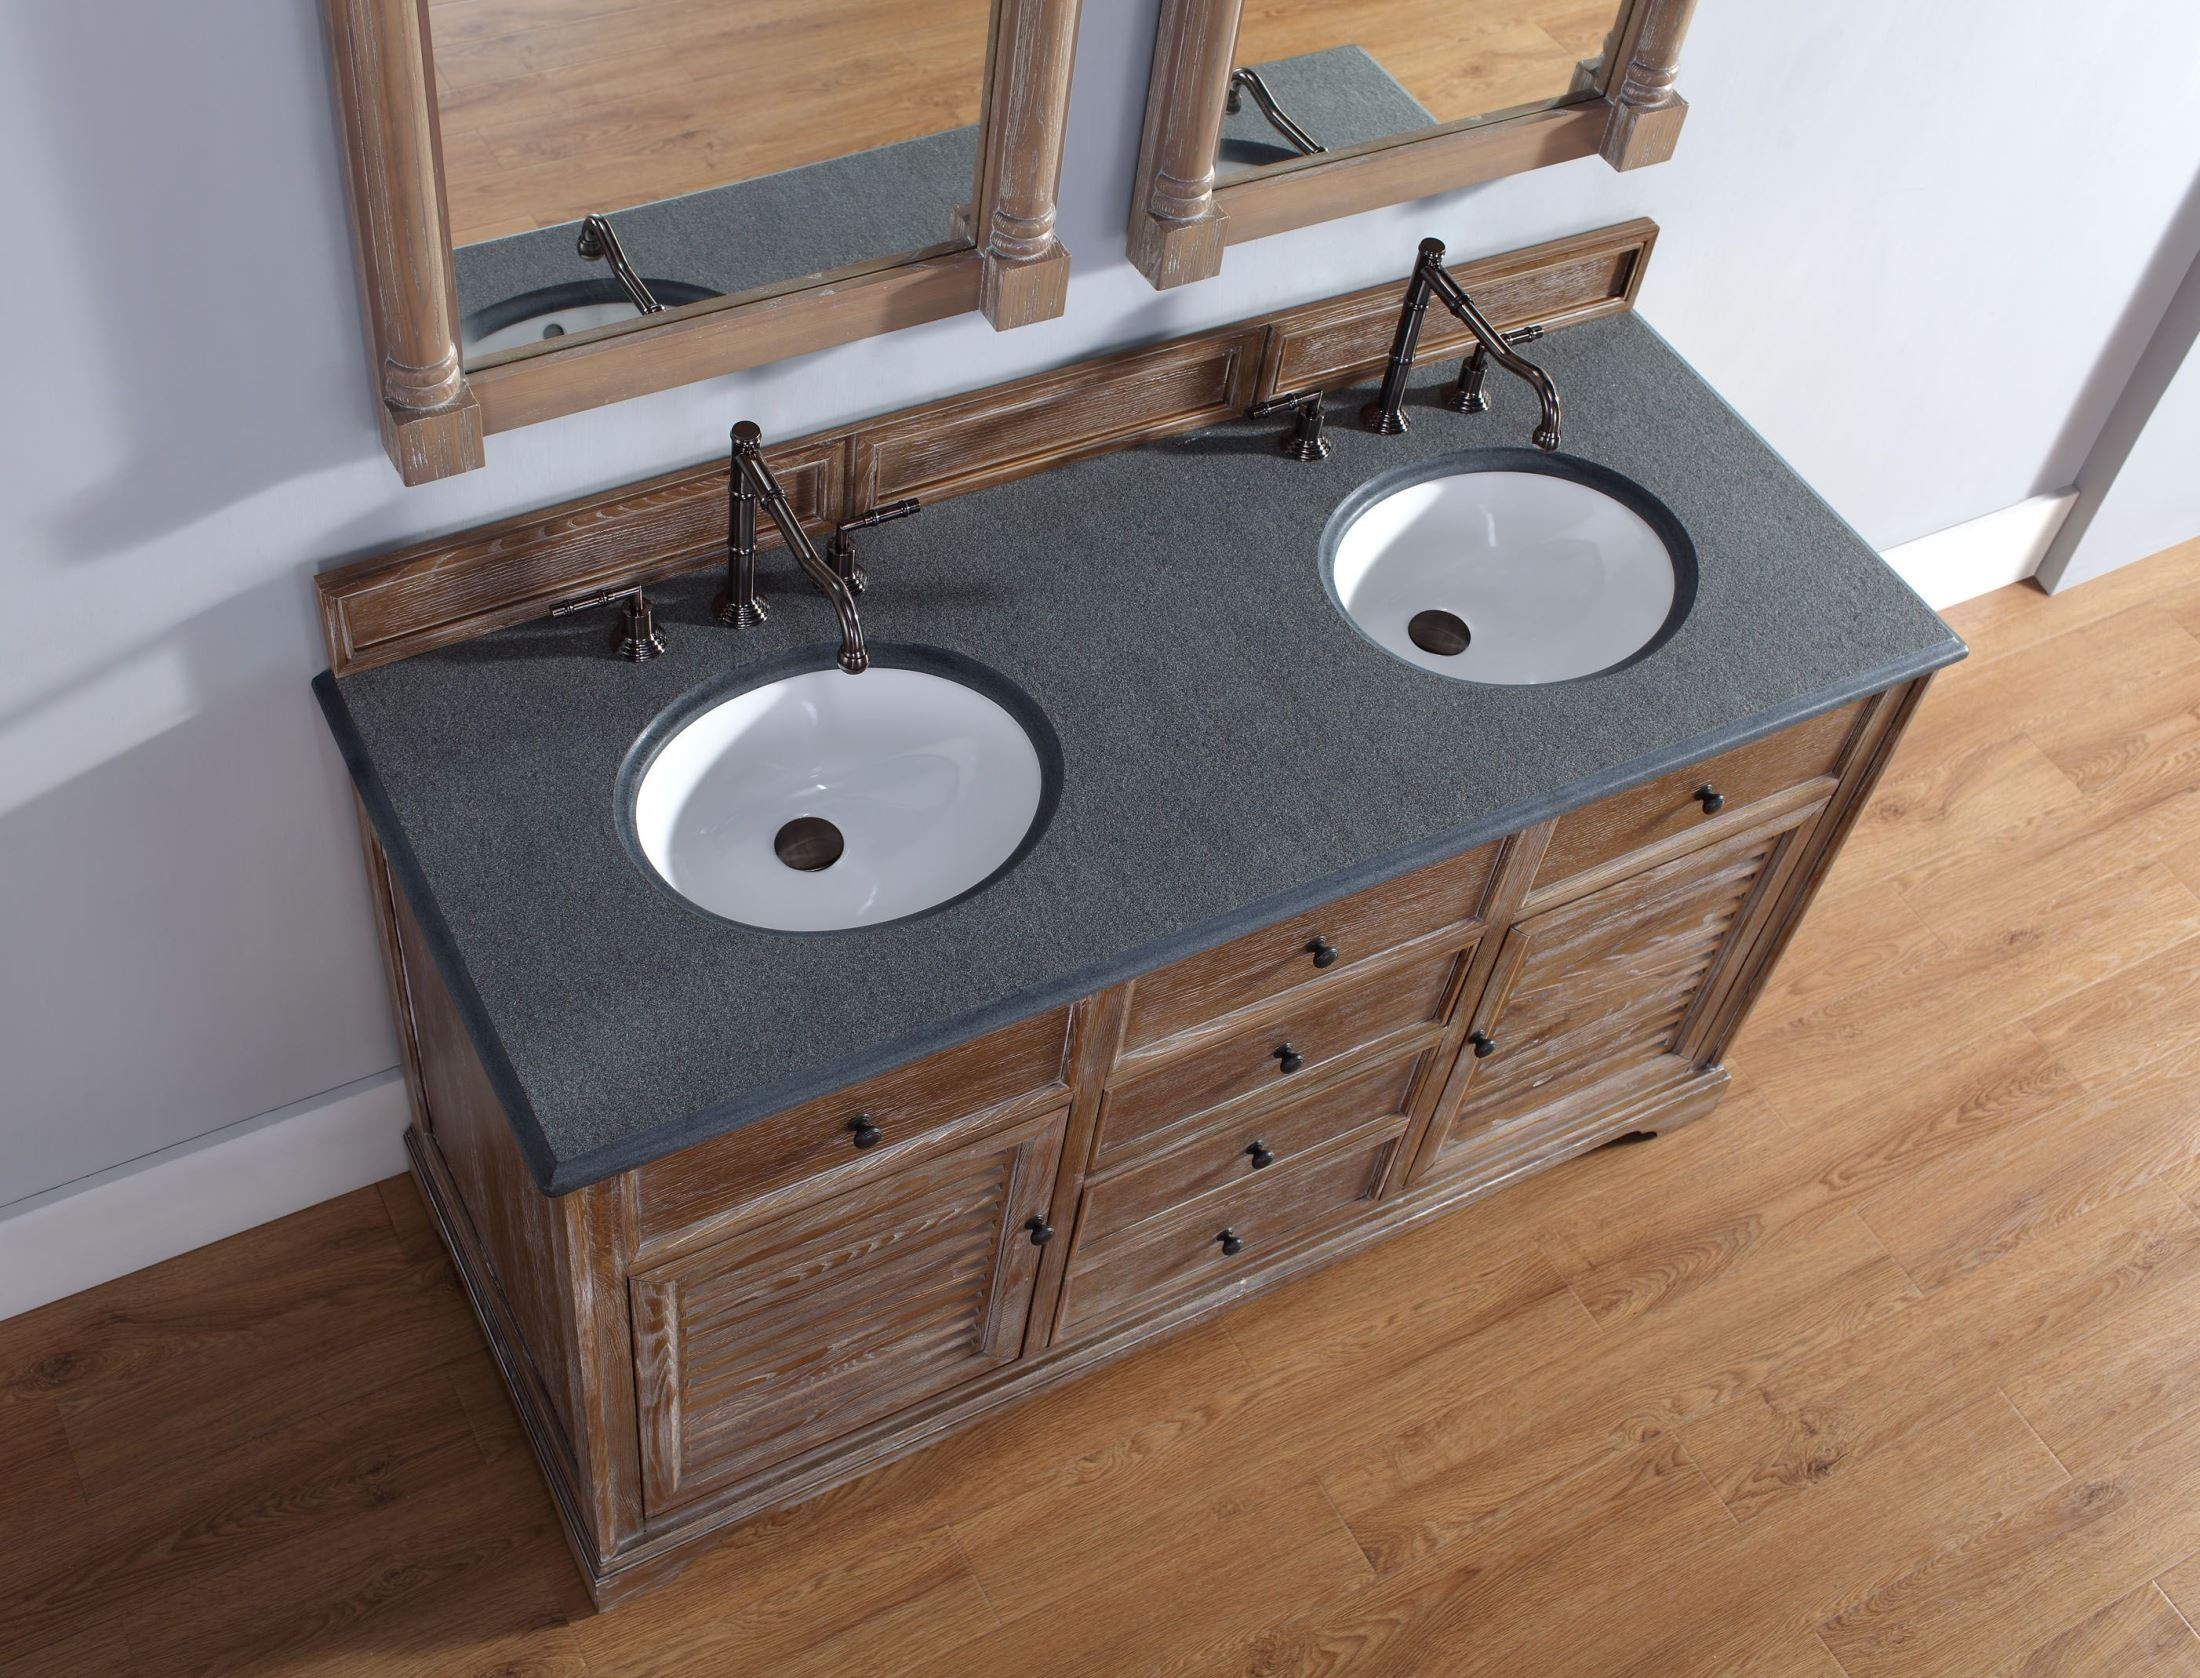 60 Savannah Double Driftwood Black Rustic Top Vanity Cabinet With Sink From James Martin